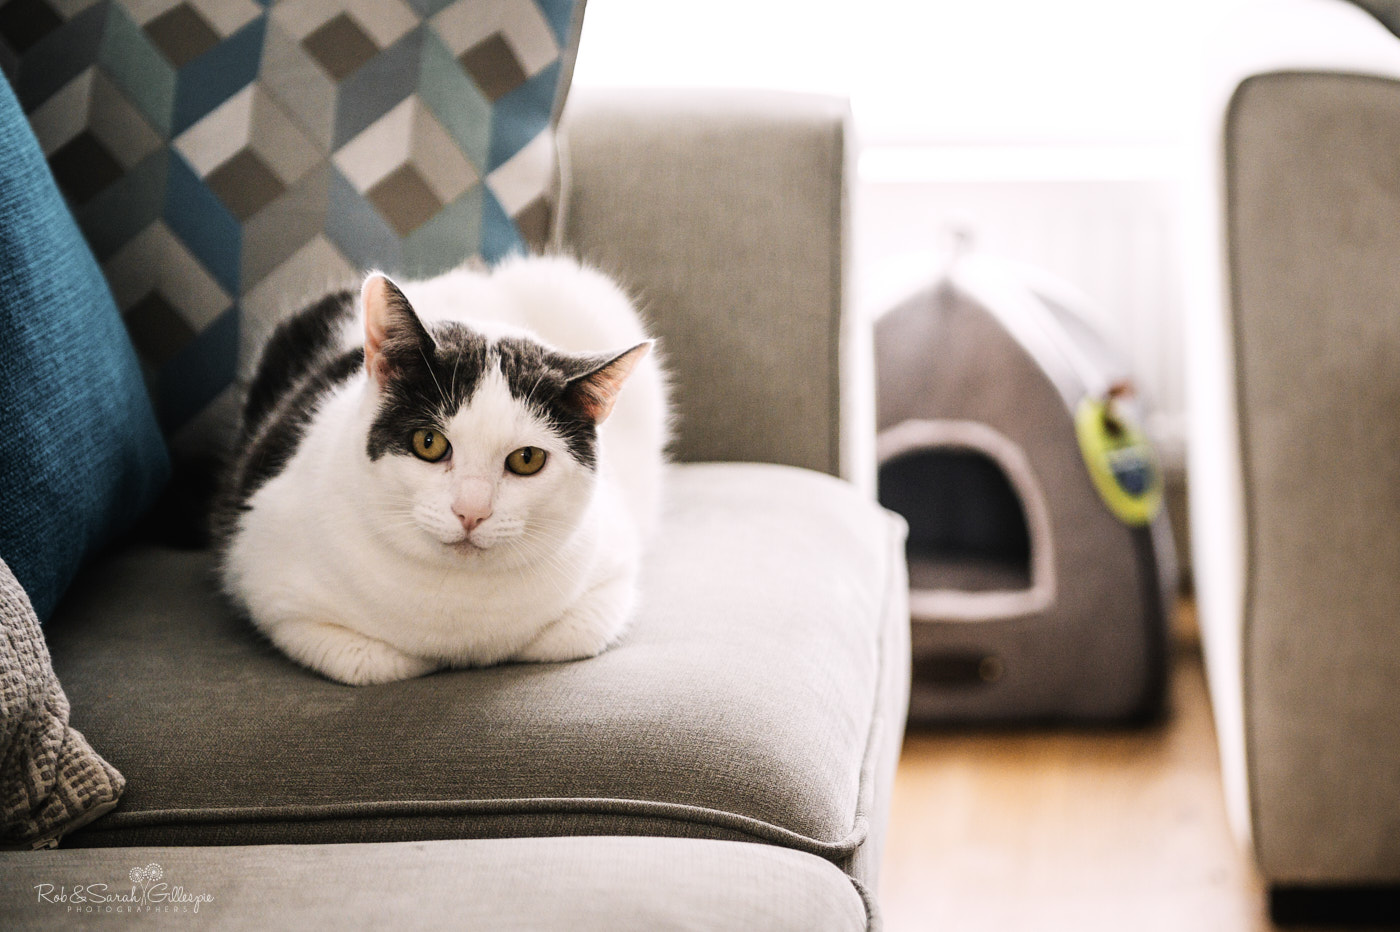 Cat sits on sofa as groom prepares for wedding